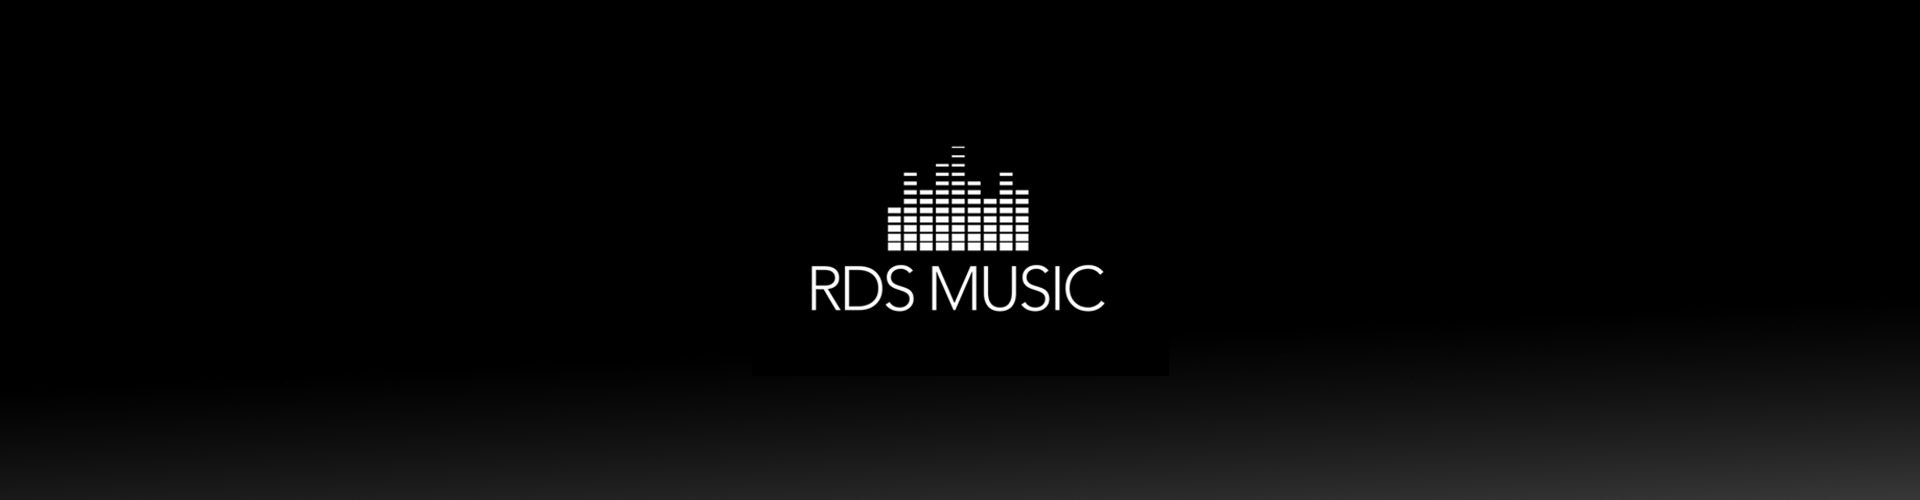 http://www.rds-music.com/label/wp-content/uploads/2017/05/rds-home-slide.jpg